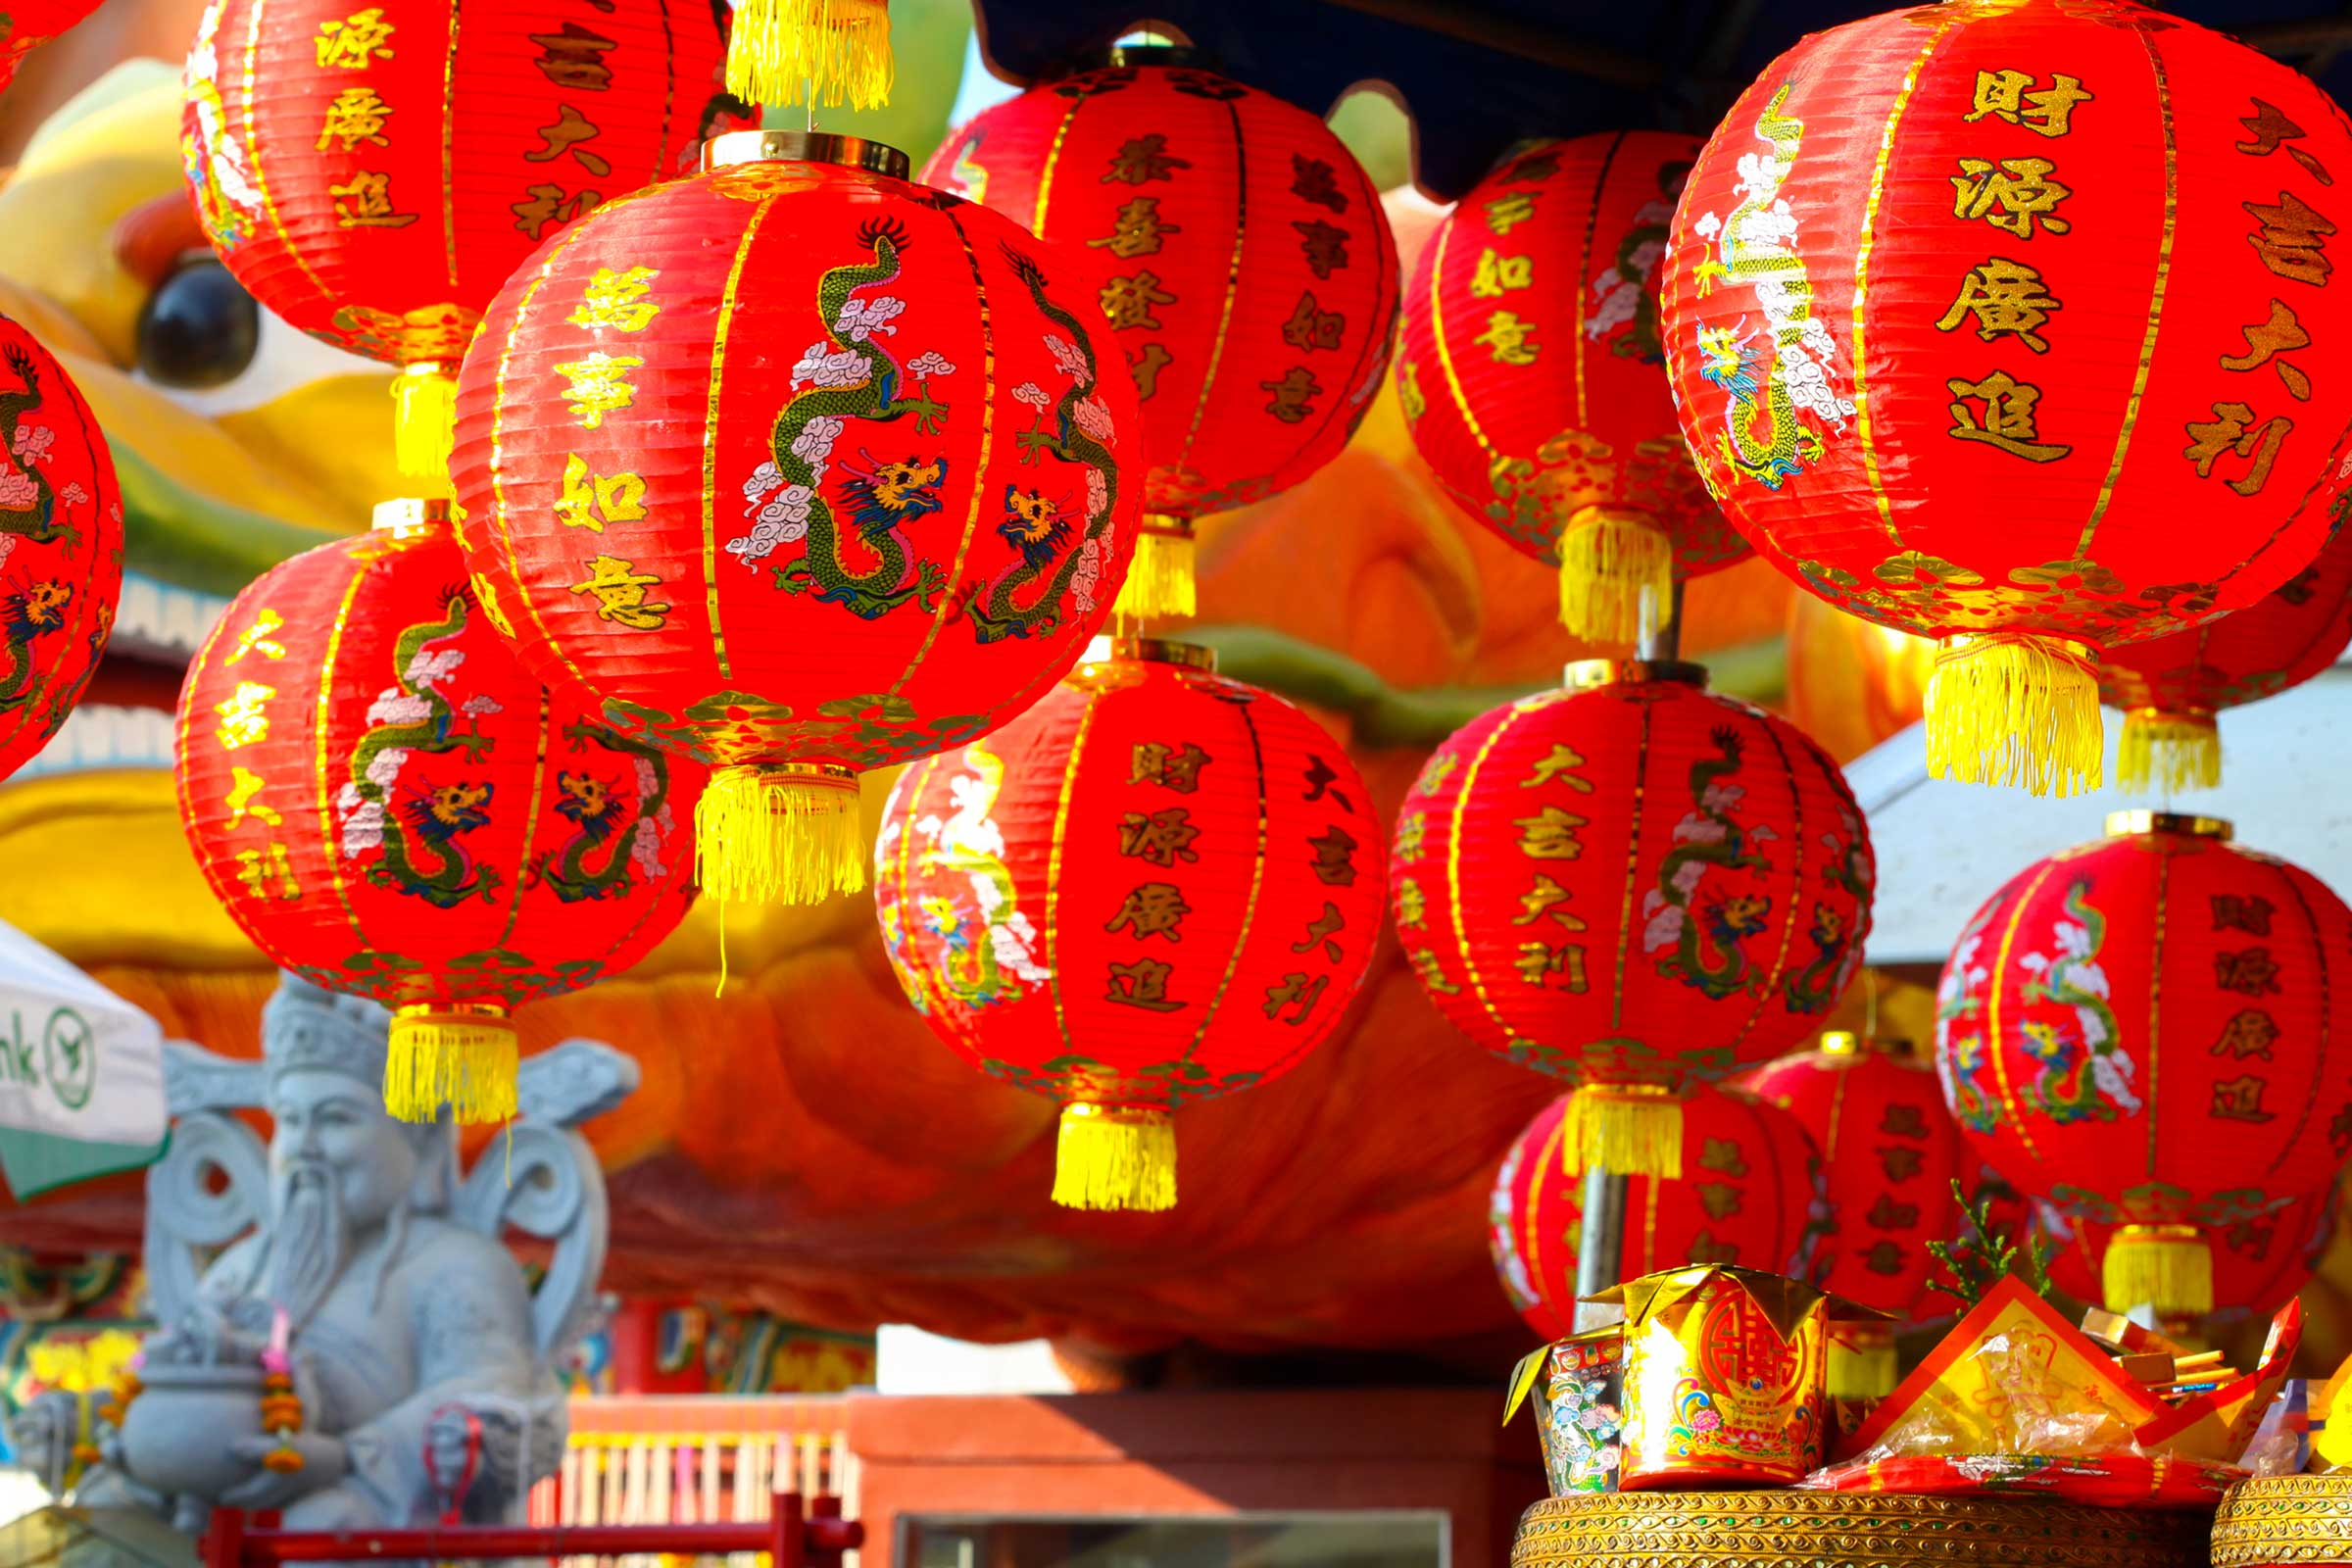 Whale Knows - How Importers Can Prepare for Chinese New Year Disruptions